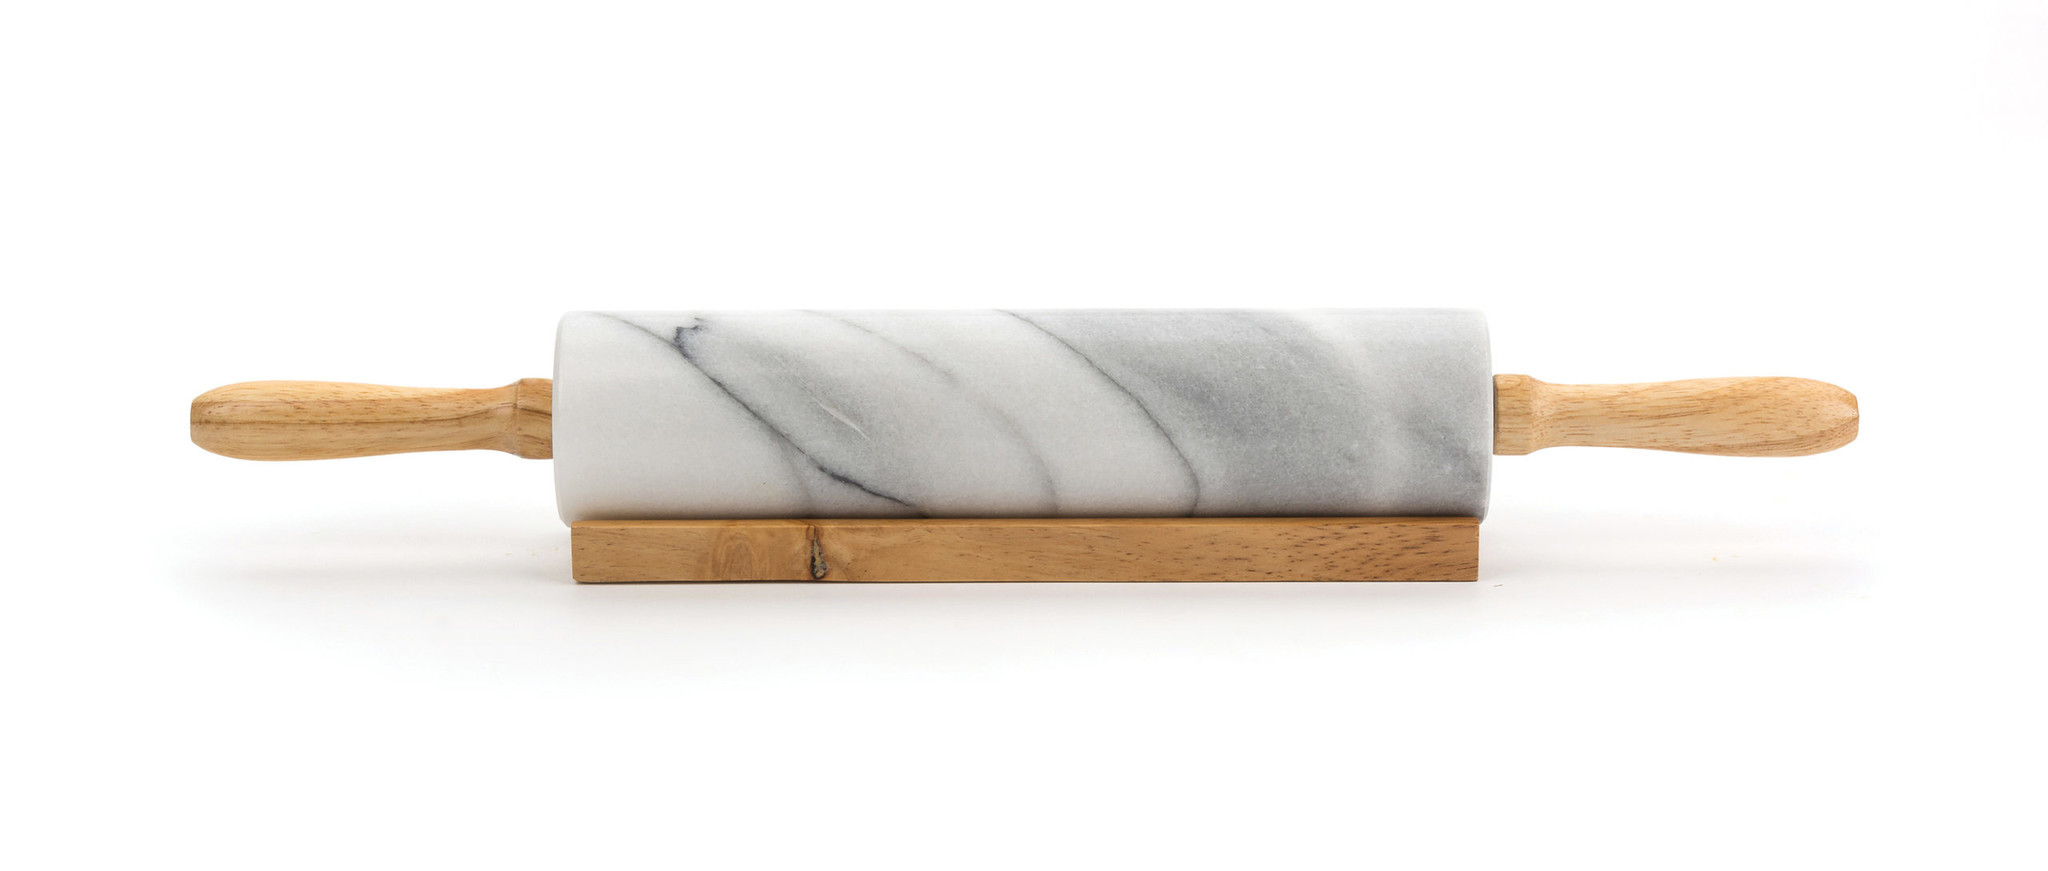 RSVP MARBLE ROLL PIN/STAND-1